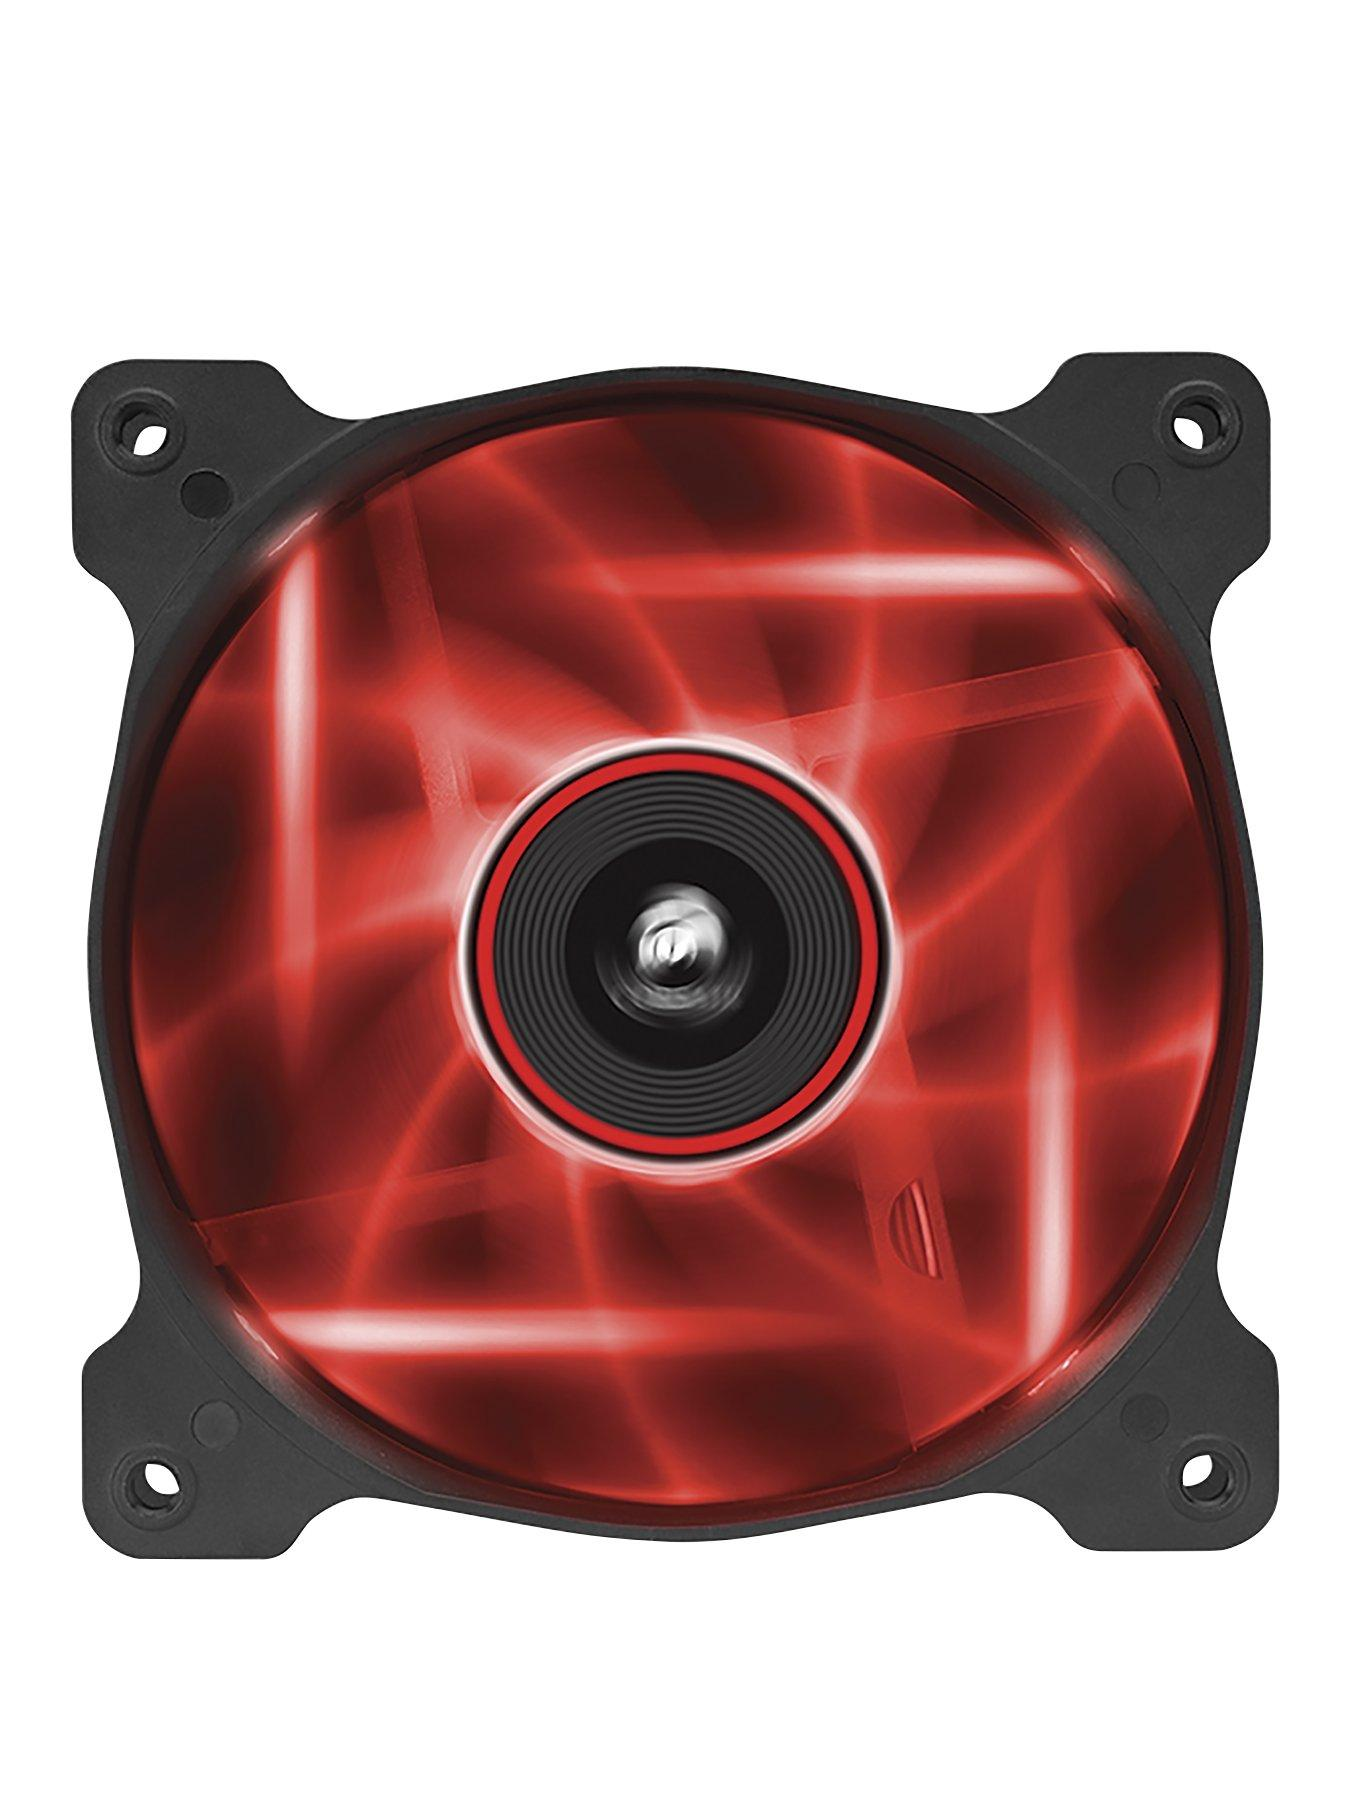 Compare prices for Corsair Af120 Led Red Fan Dual Pack